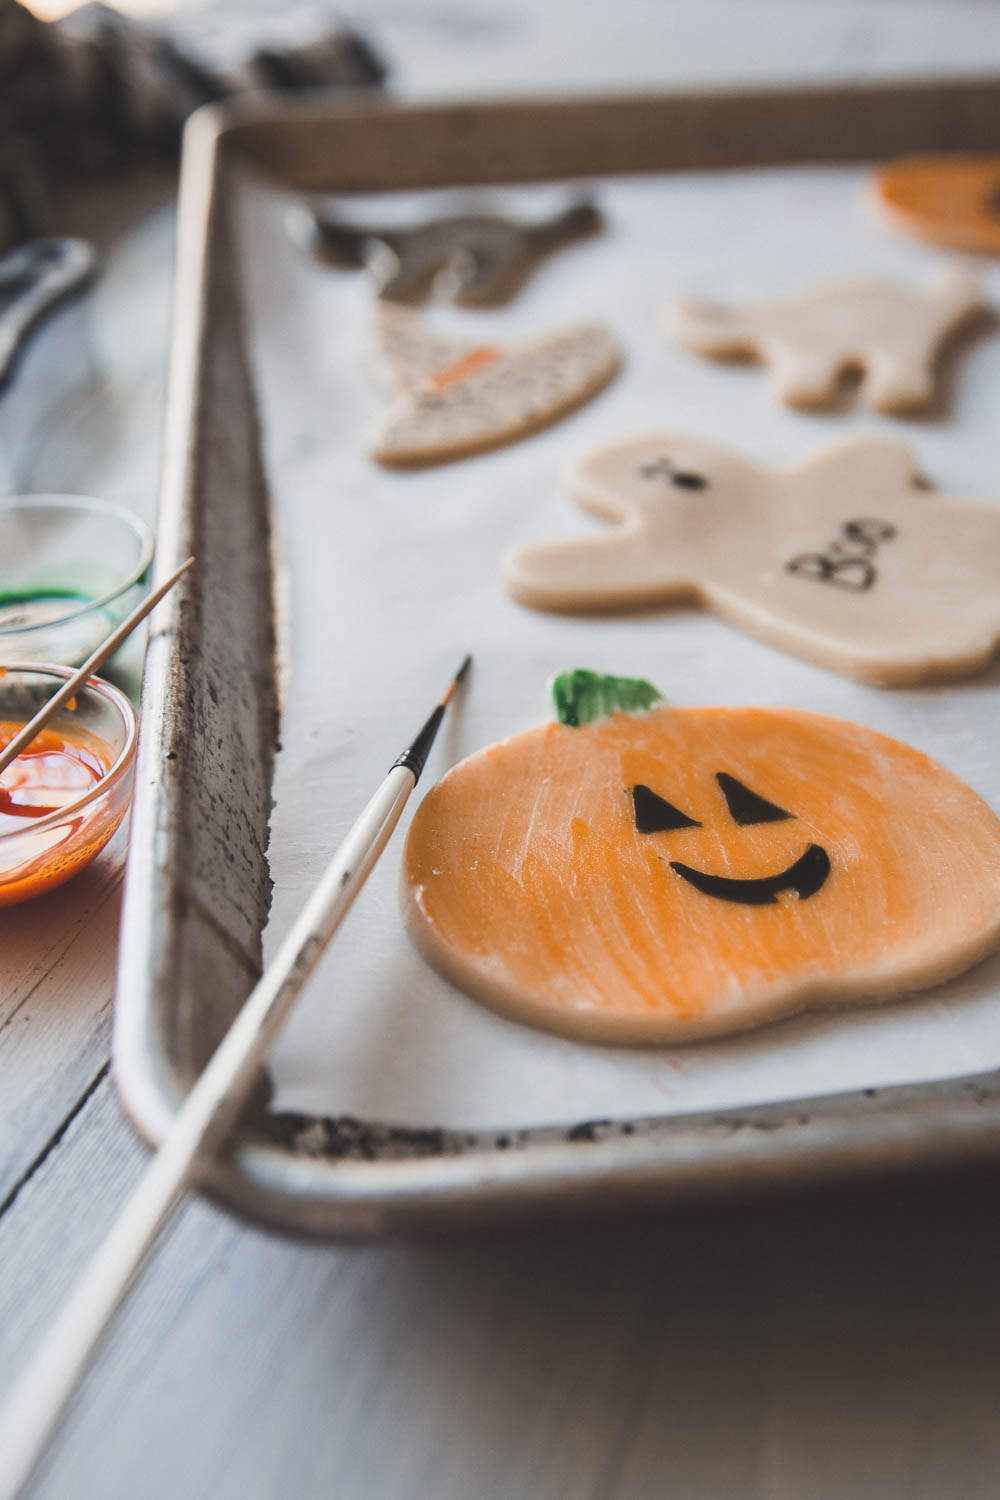 Painted Halloween pumpkin cookie